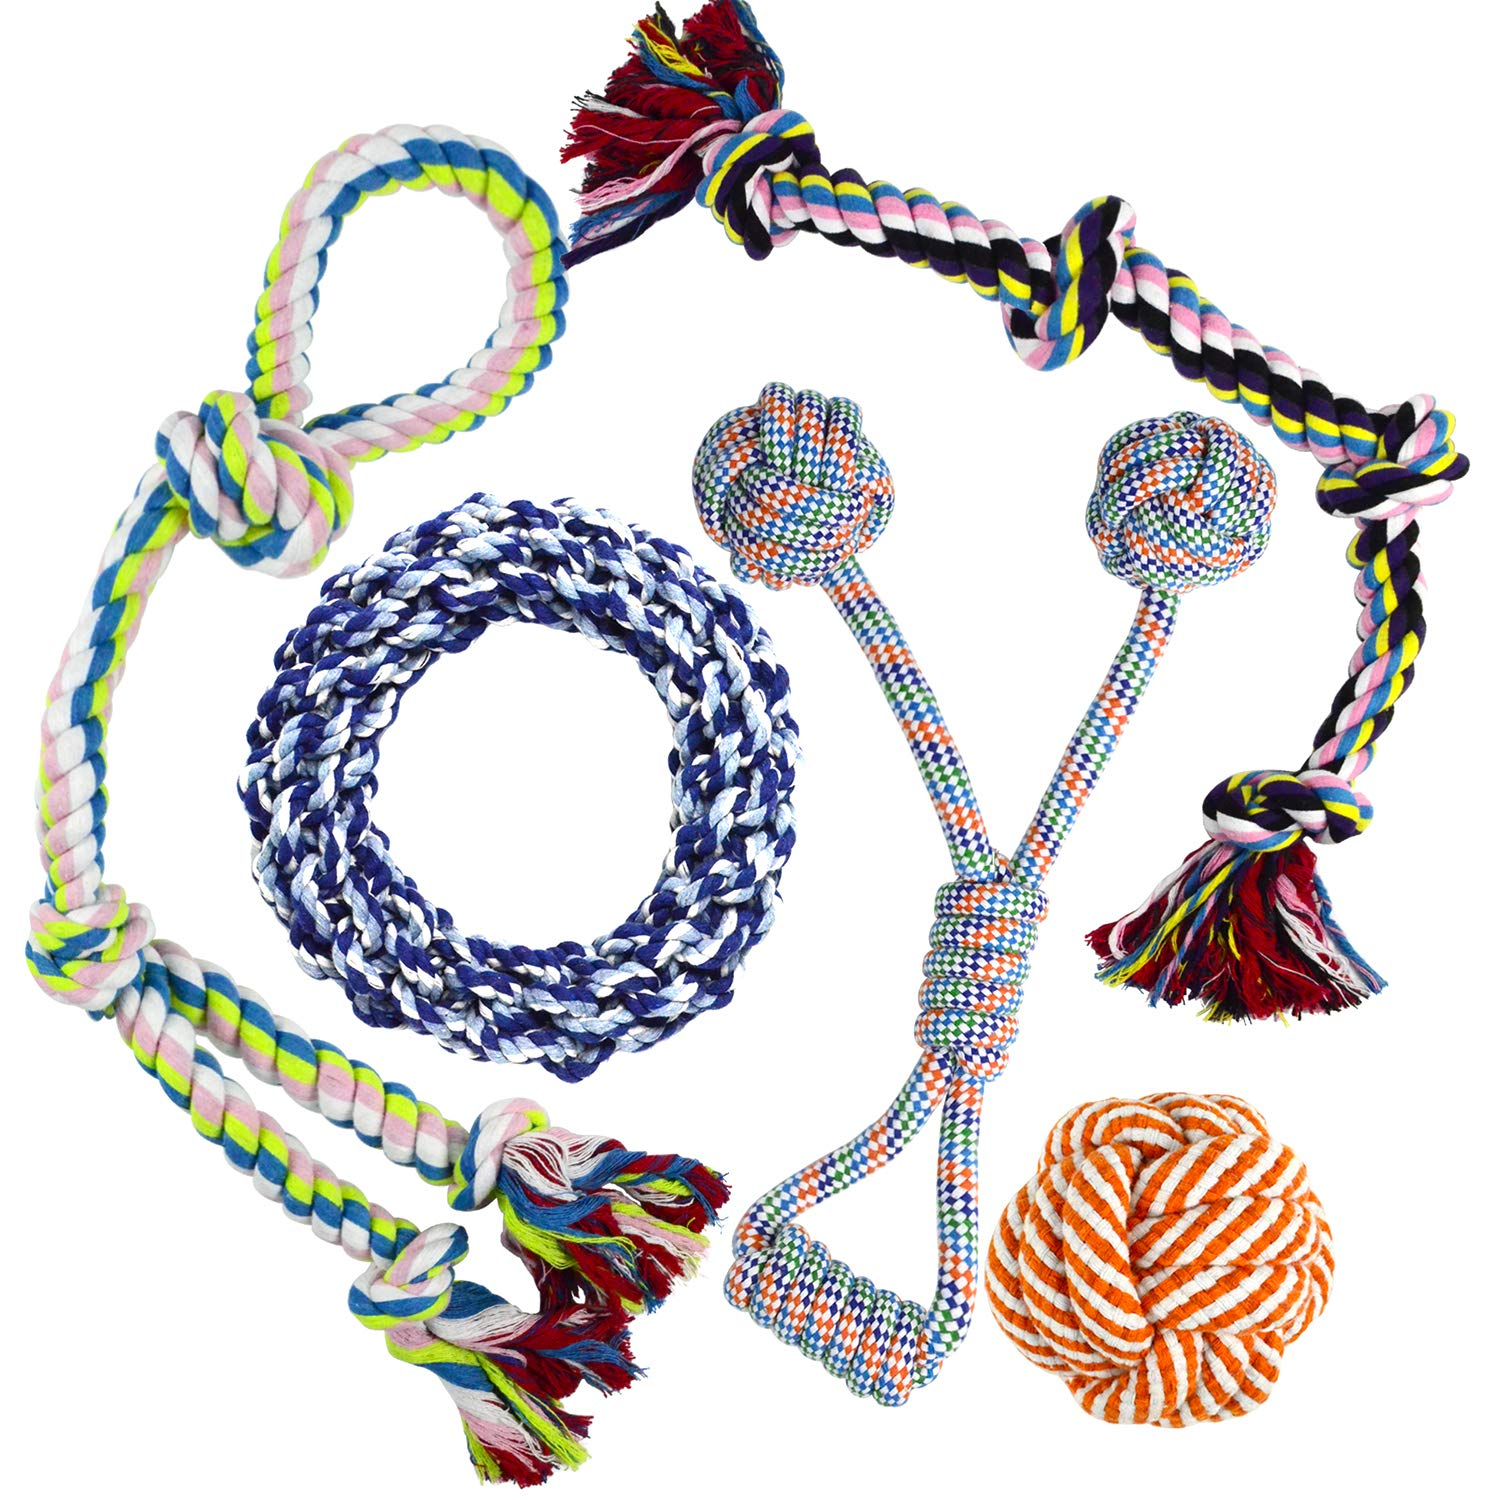 Whoobee Rope Dog Toy, Durable Dog Toys for Playtime and Teeth Cleaning, Cotton Tug of War Balls Interactive Toys for Medium to Large Dogs(Set of 5)